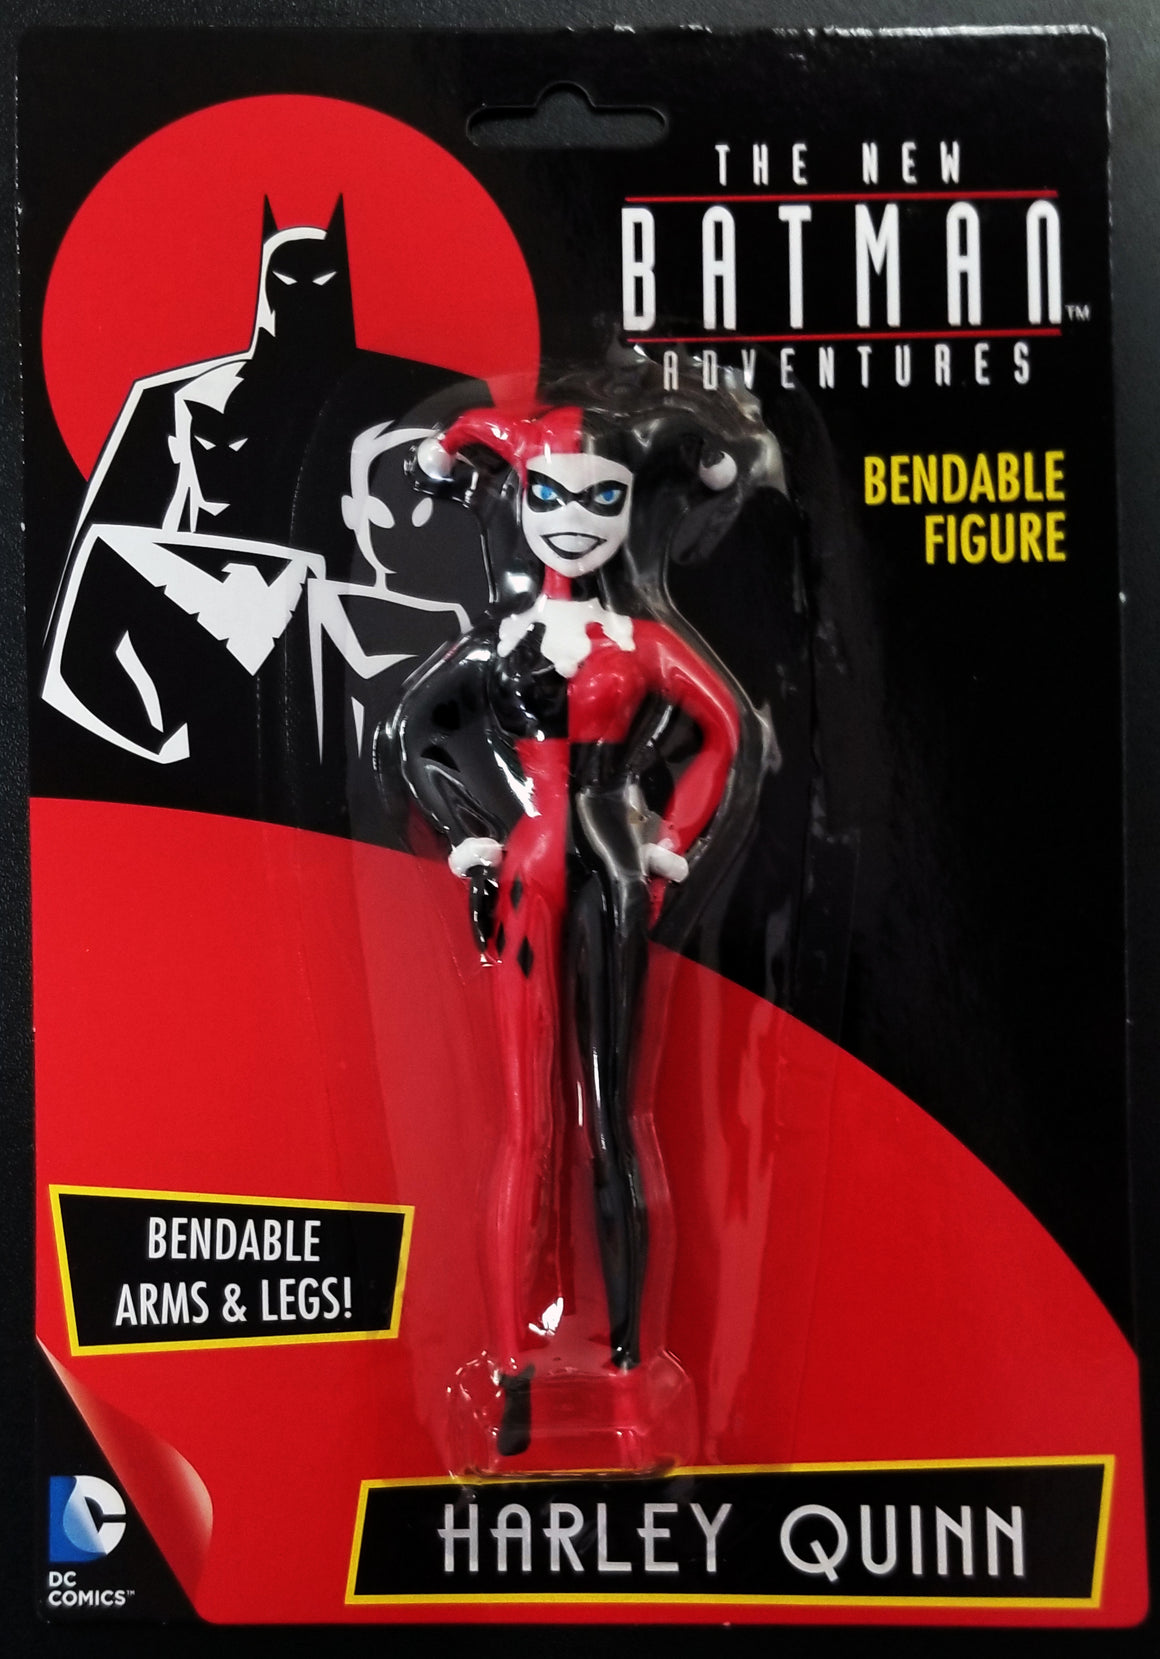 Harley Quinn The New Batman Adventures Bendable Figure